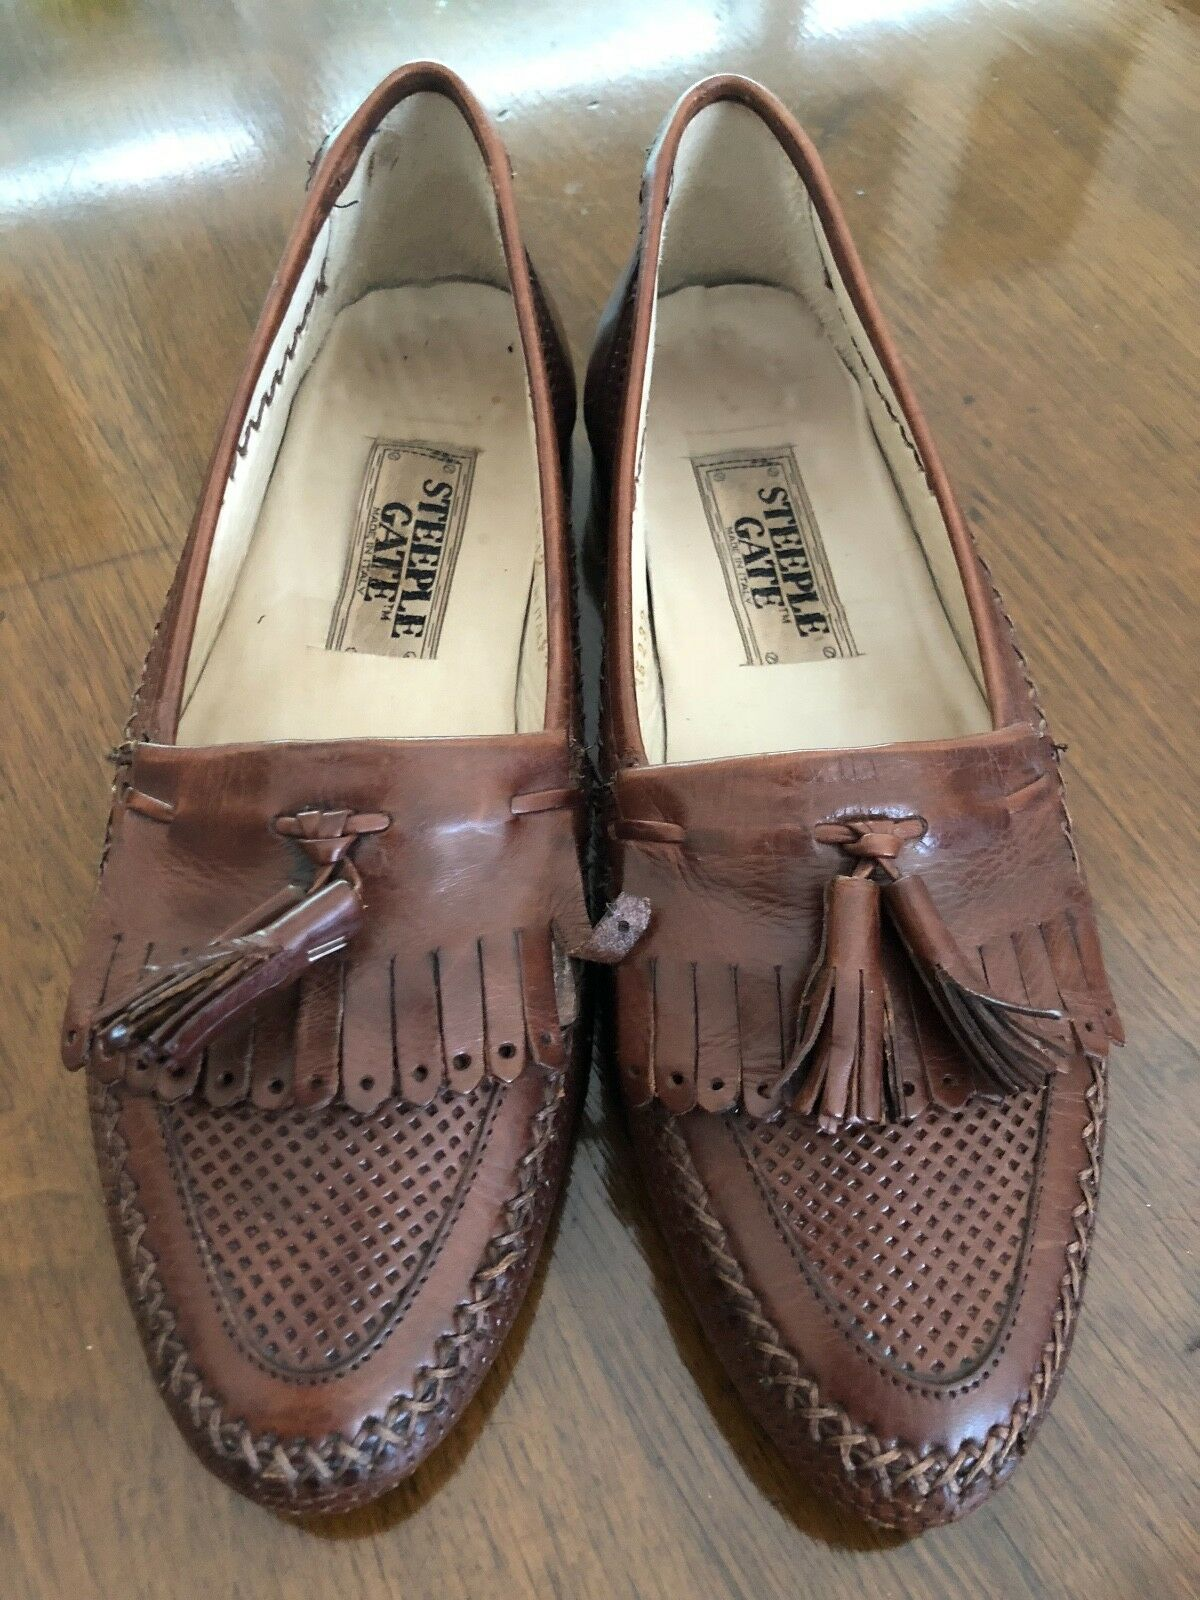 Steeple Gate mens size 7.5 brown slip-on tasseled dress shoes with leather sole